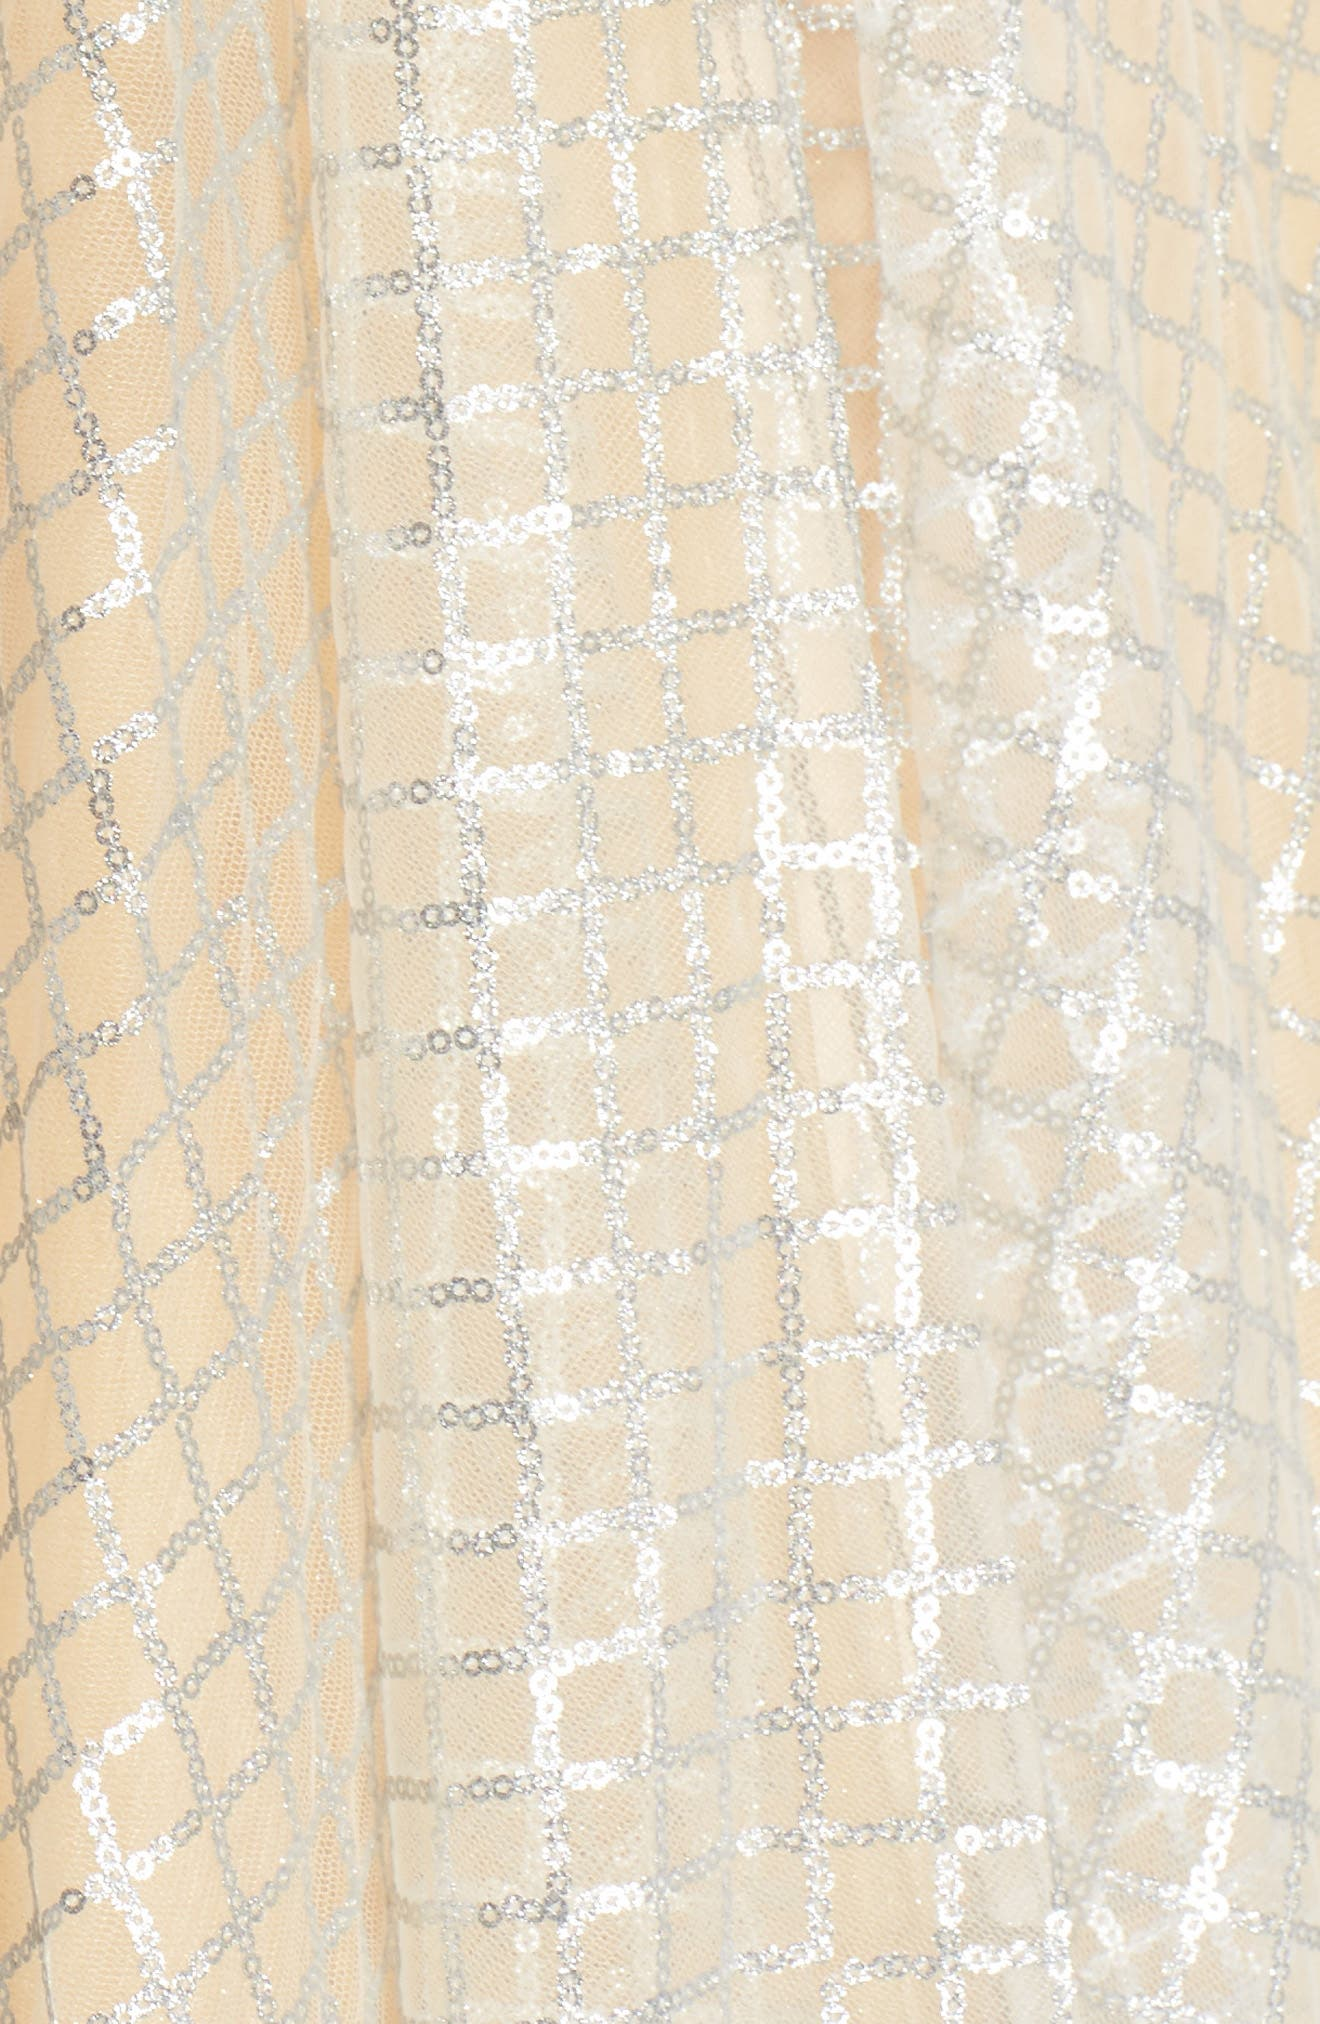 Sequin Illusion Neck Gown,                             Alternate thumbnail 5, color,                             Nude/ Silver